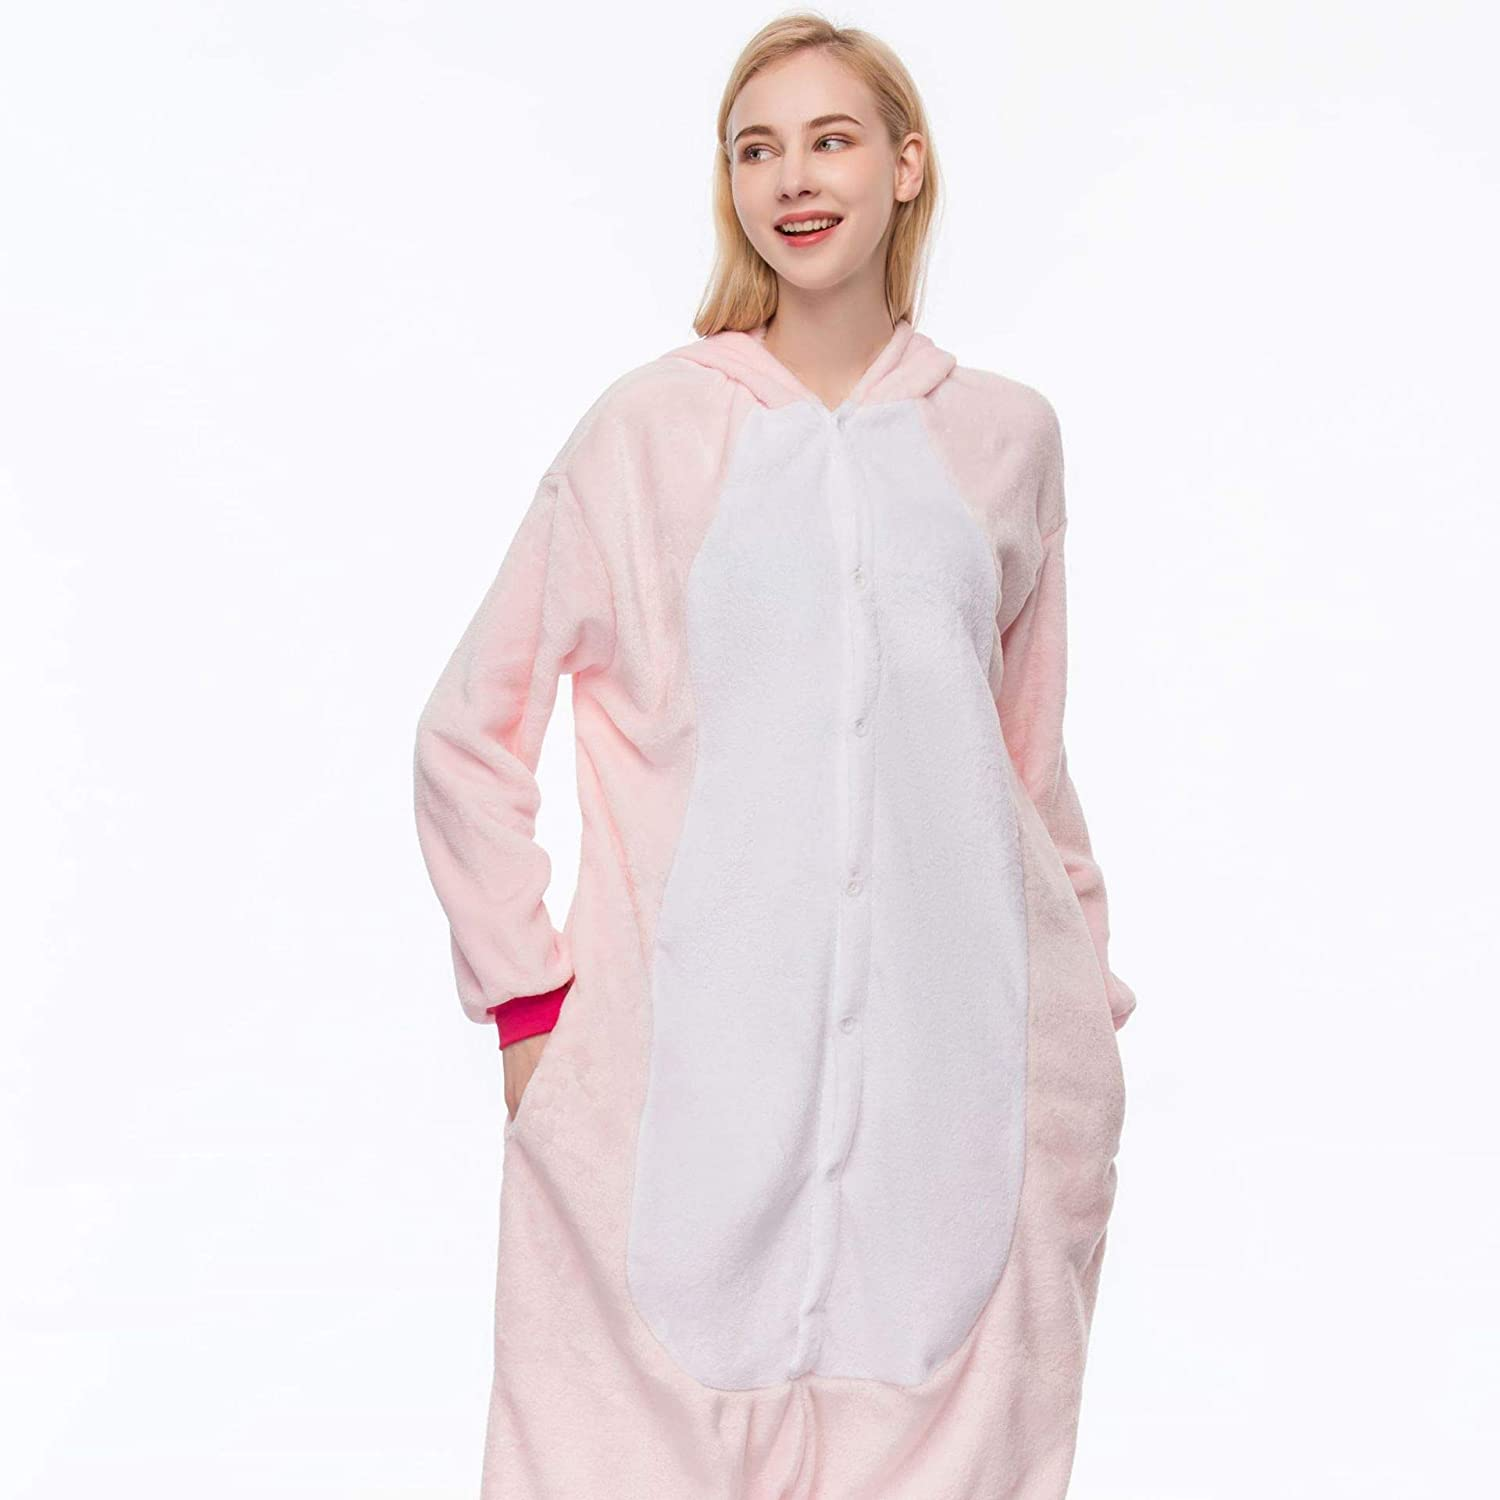 H Couple Pajamas Conjoined Sleepwear Thick Coral Flannel Nightgown Sleep Set Long,A,M